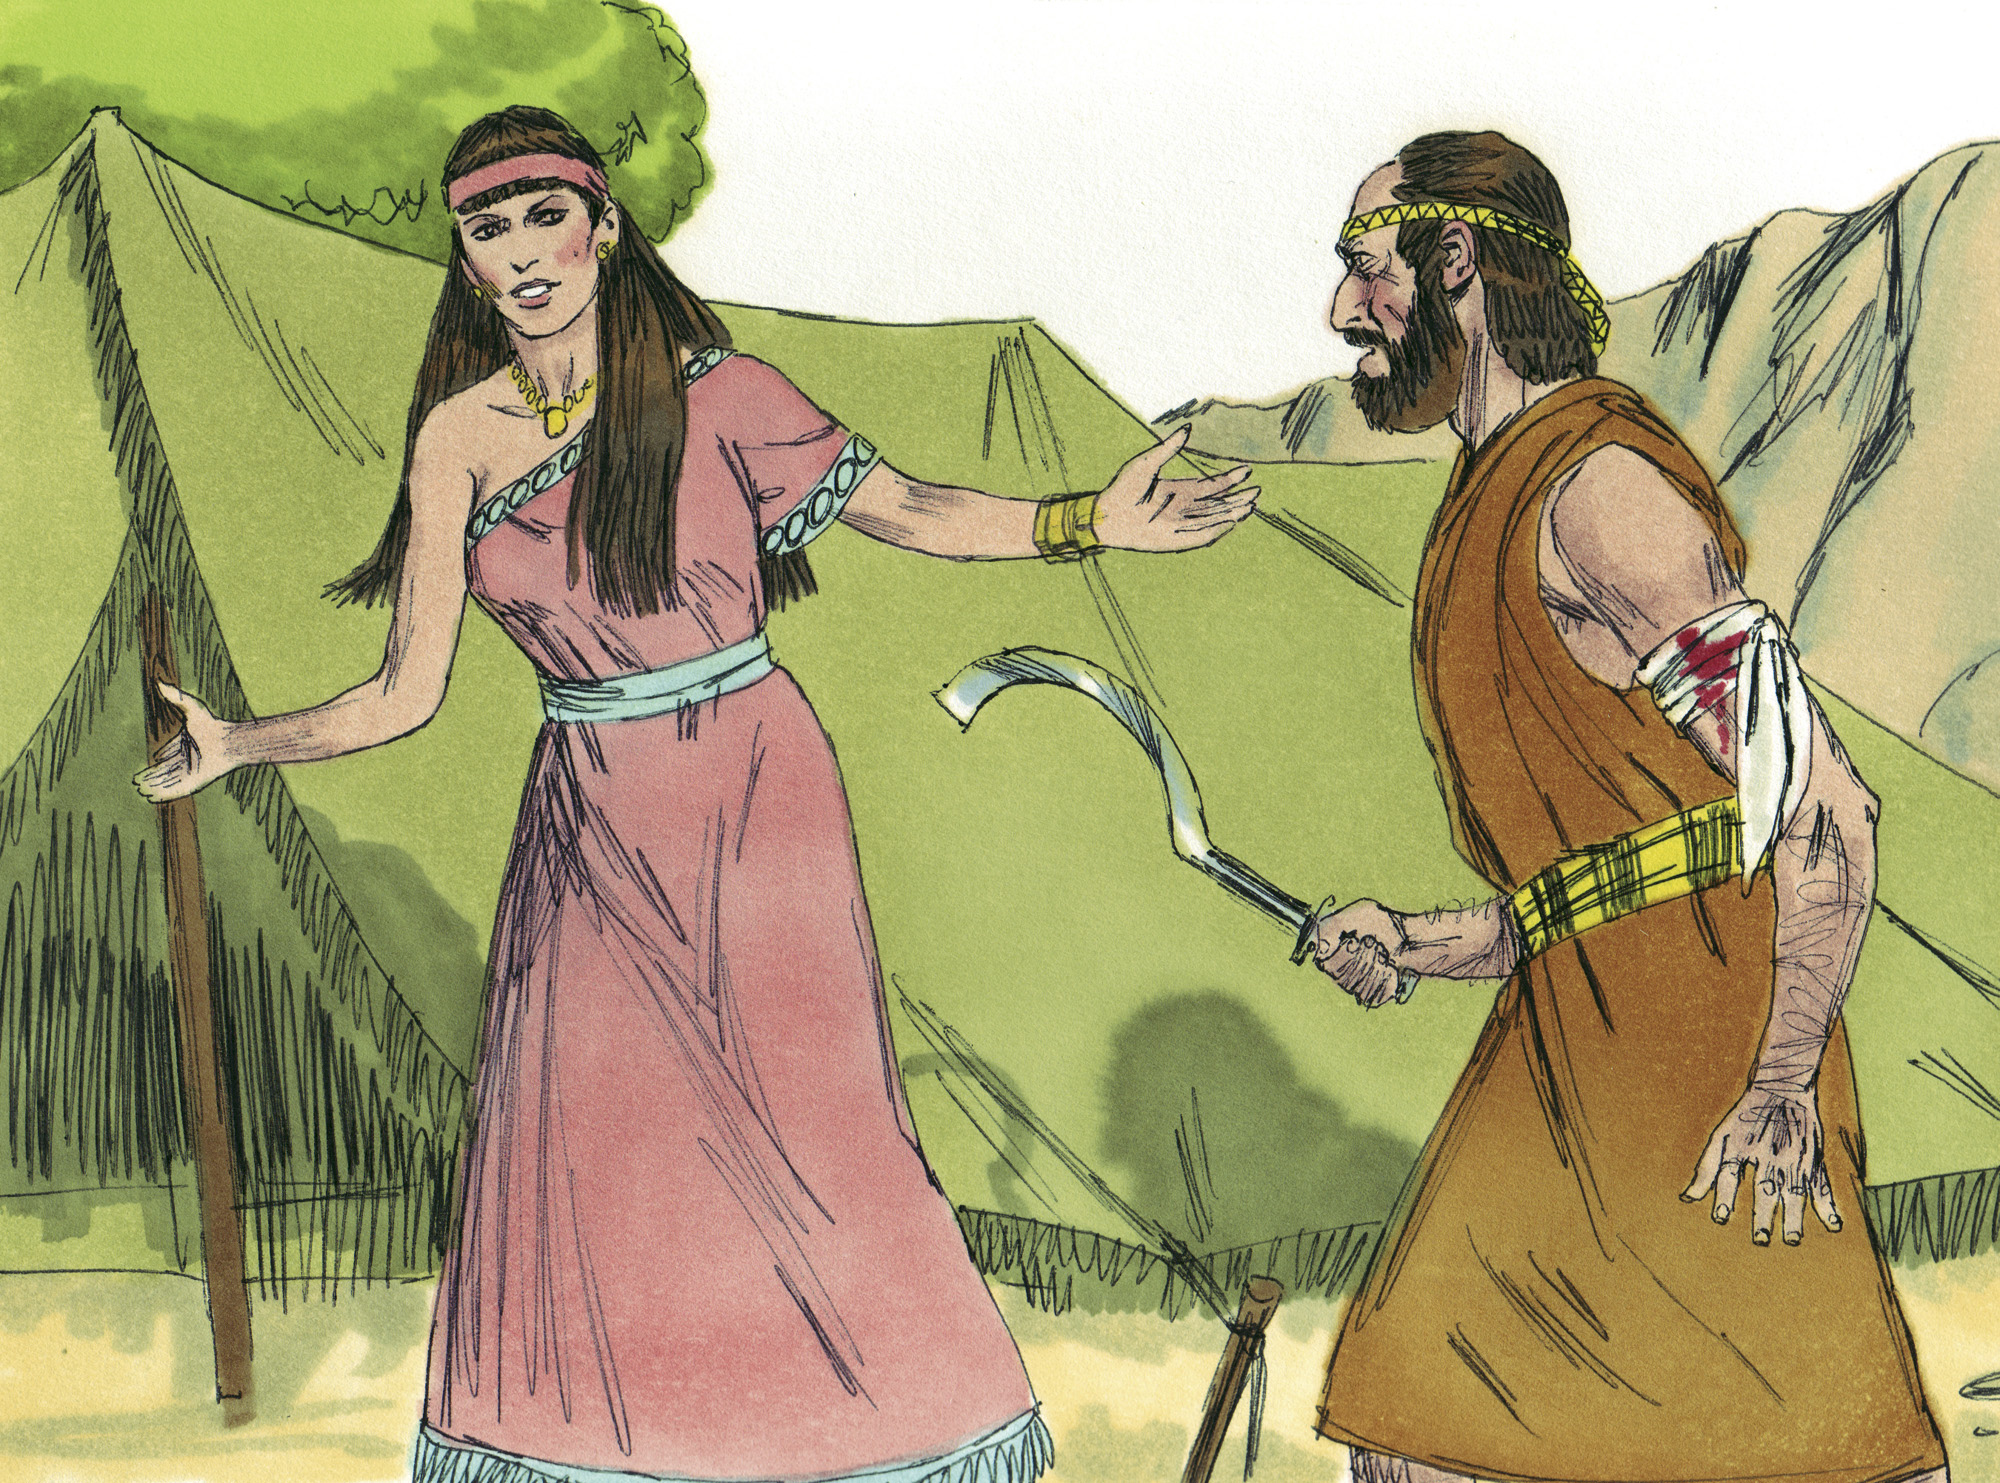 Lesbians ok reference in the bible